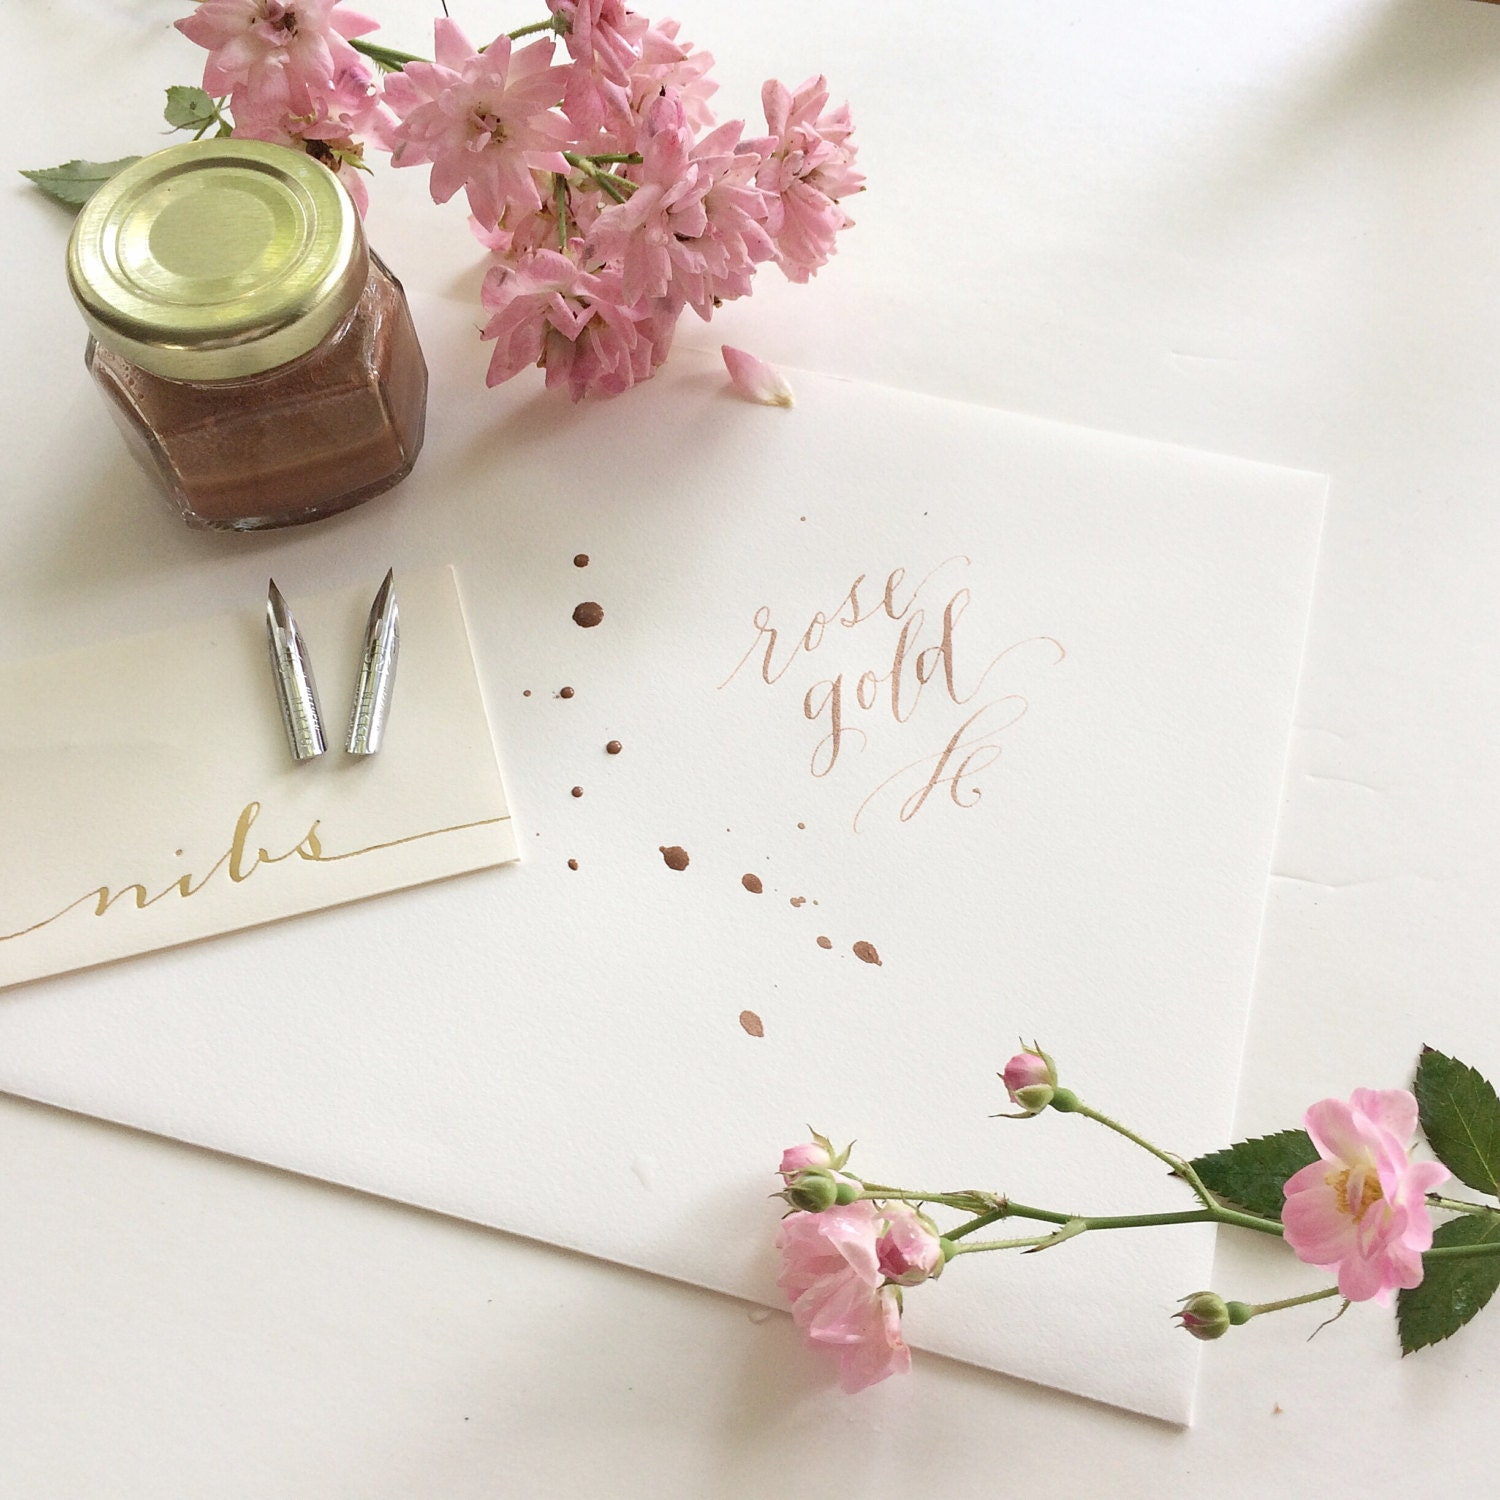 rose gold calligraphy kit add on from lhcalligraphy on